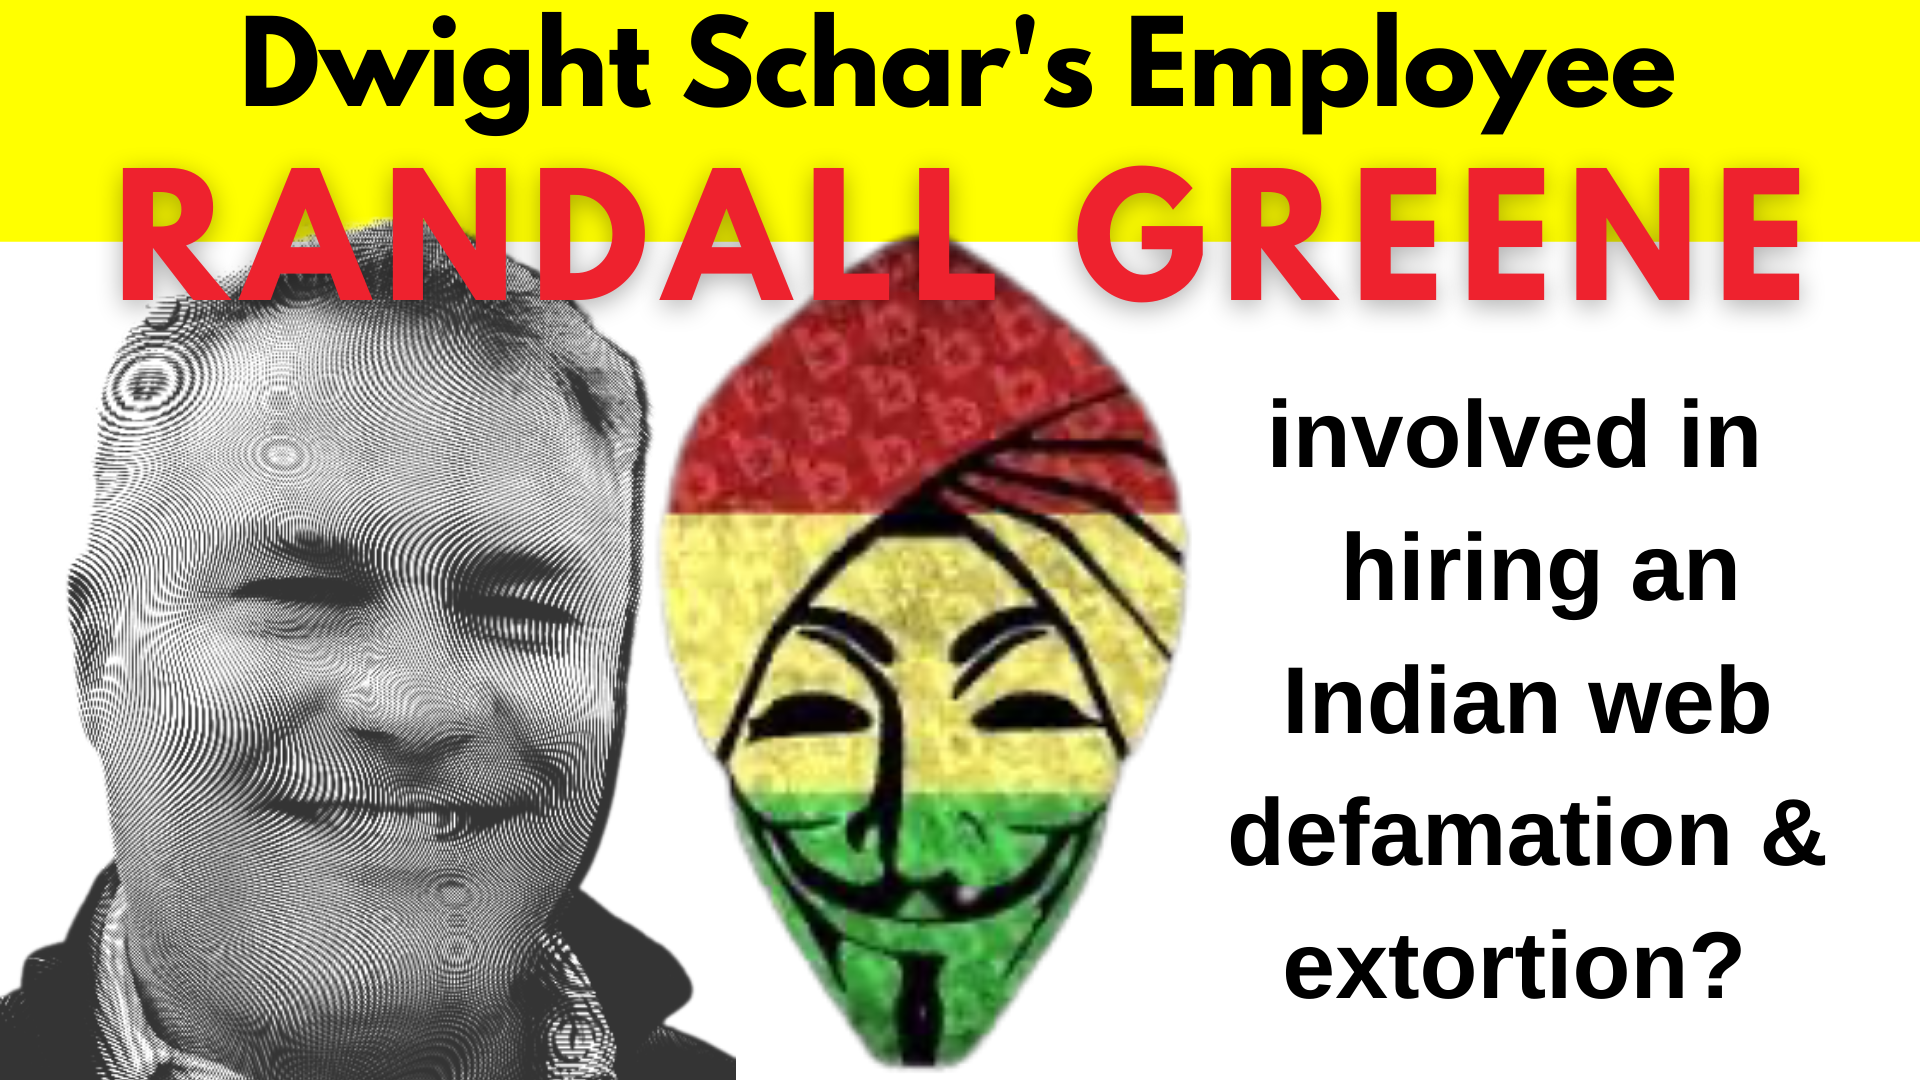 Dwight Schar's employee involved in hiring an Indian web defamation & extortion Randall Greene